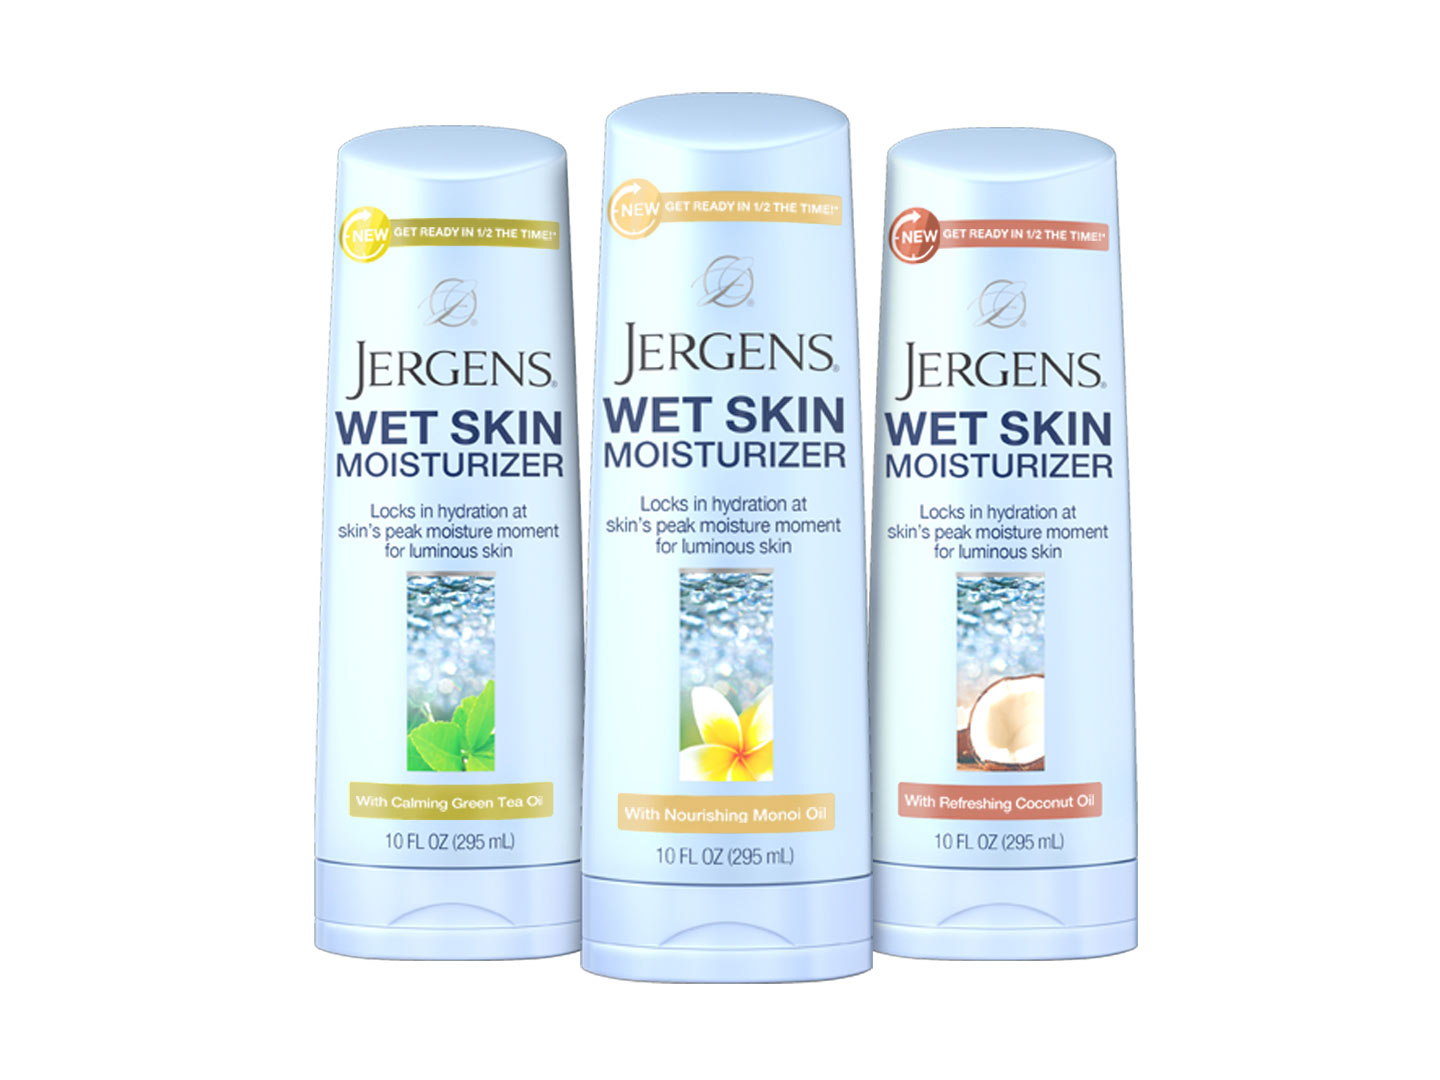 Jergens Skincare Partners With Actress Comedienne Leslie Mann